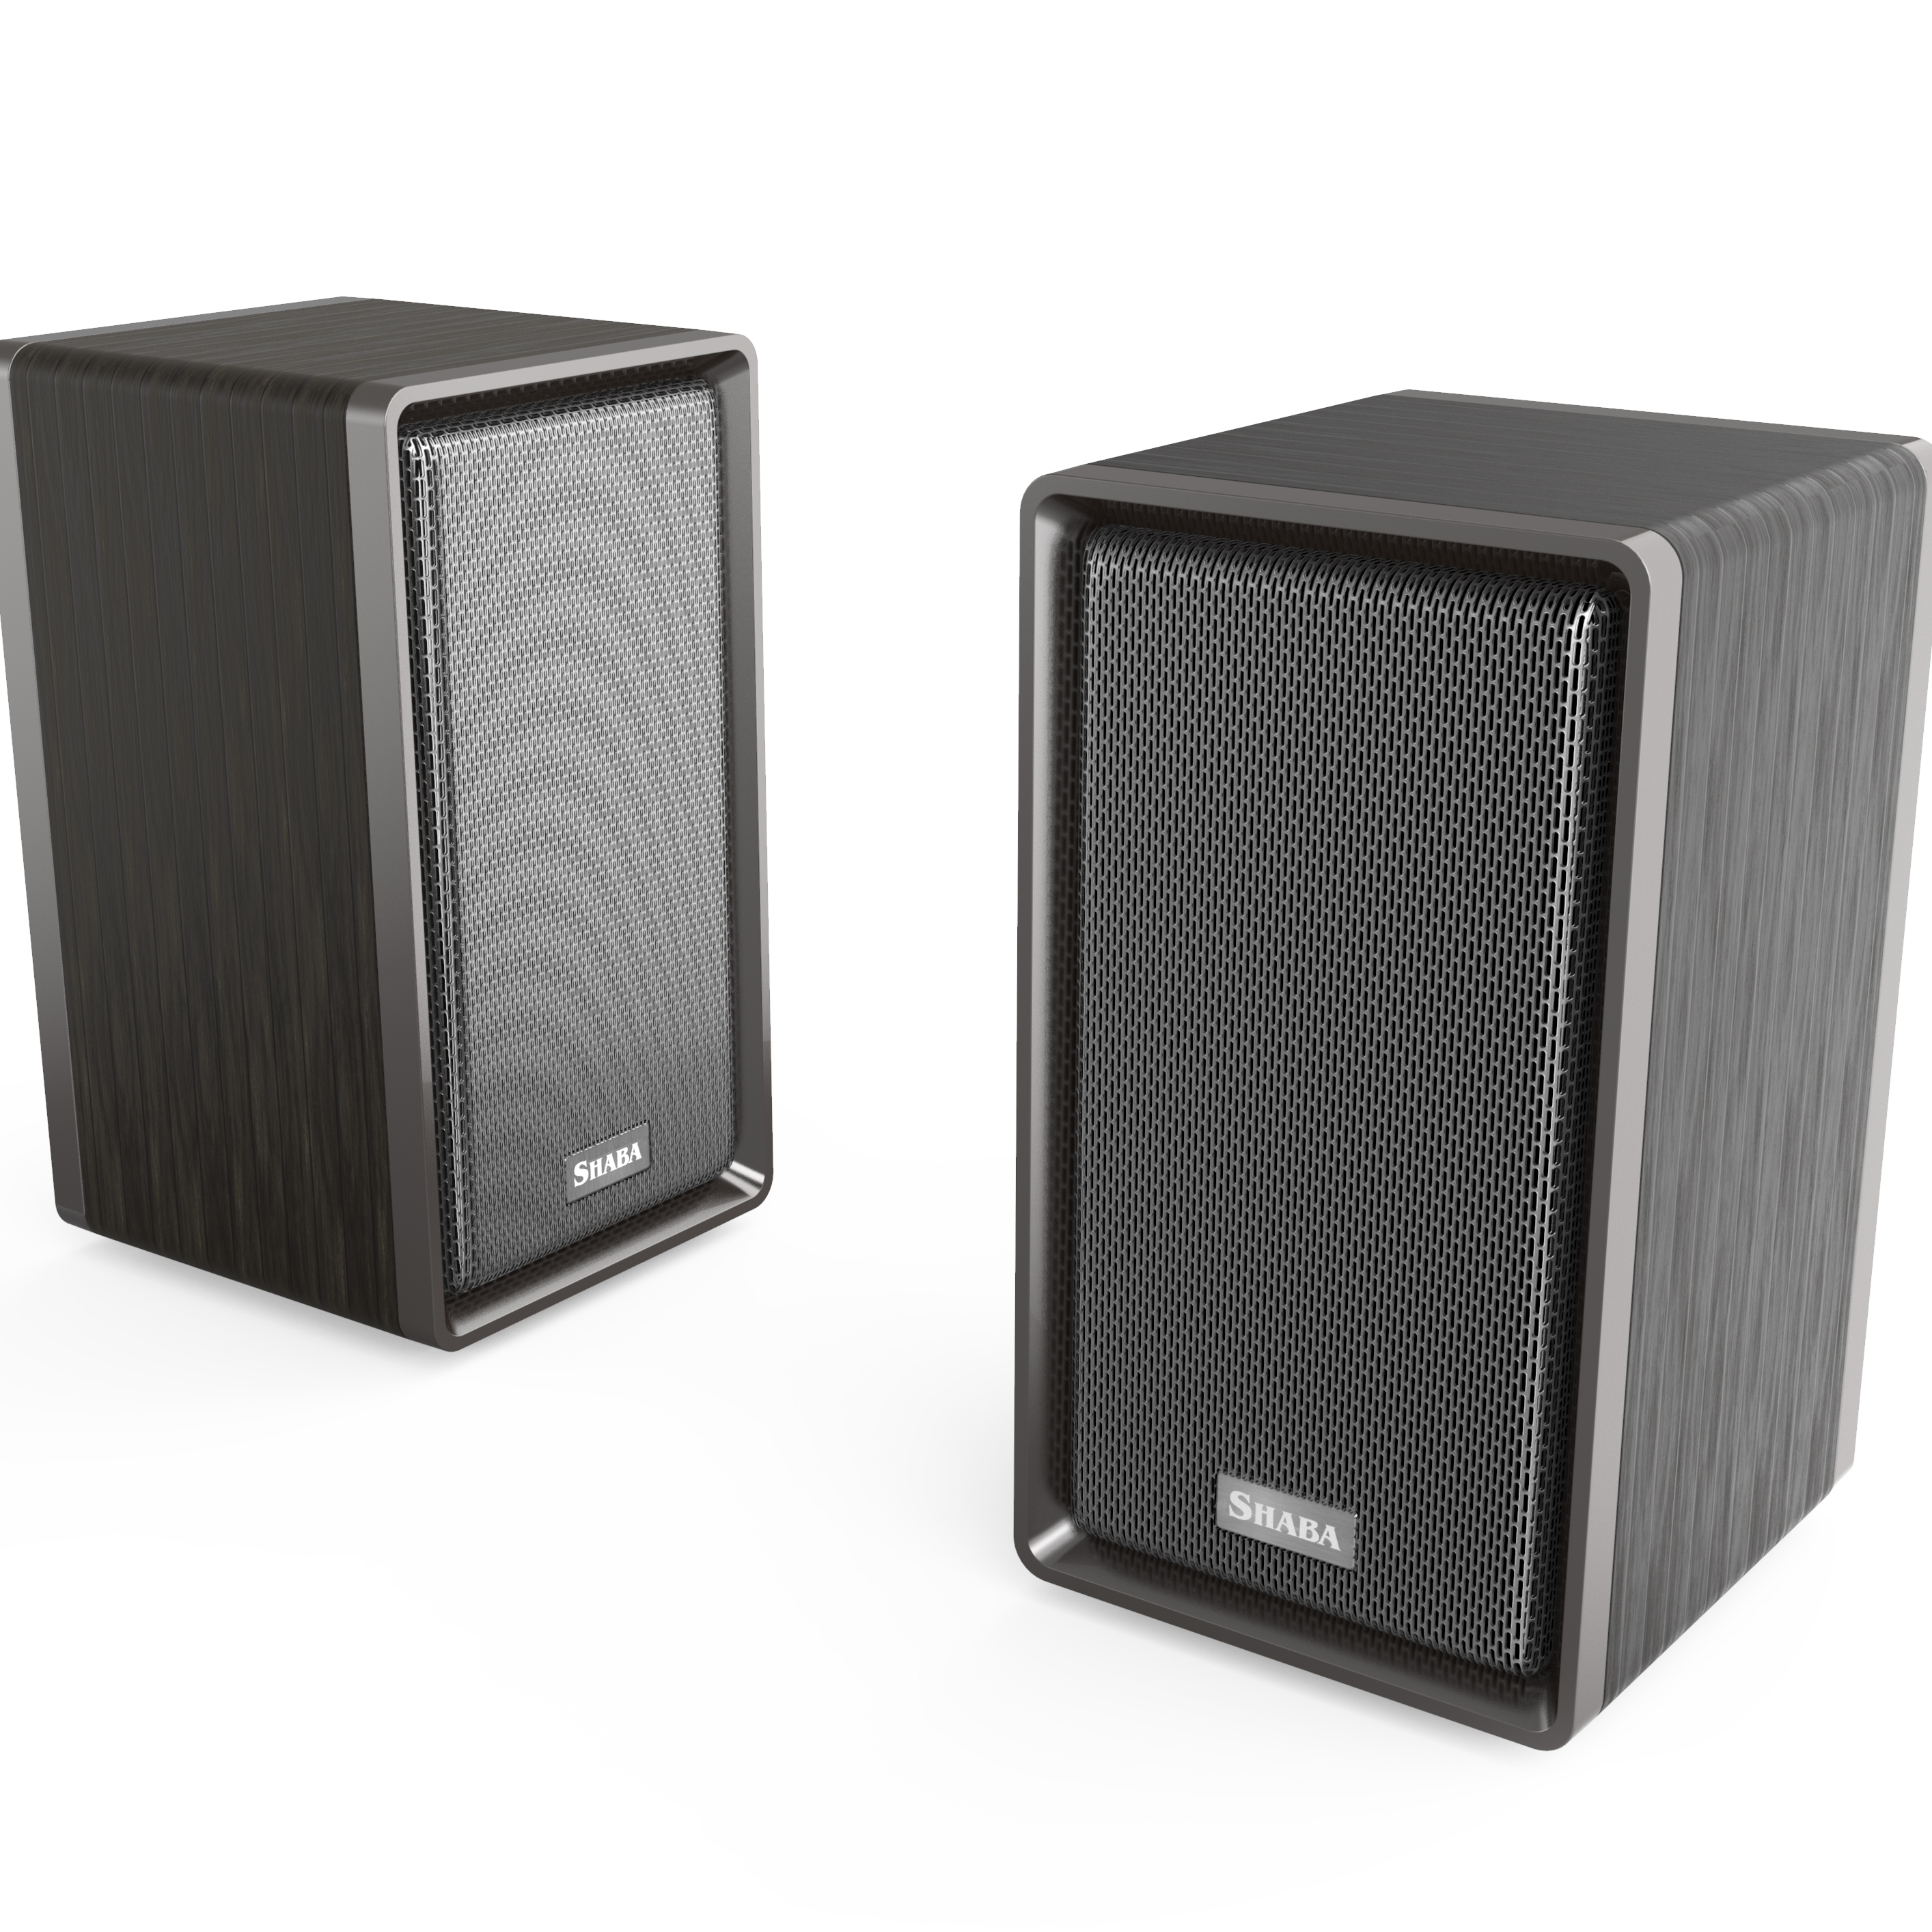 2019 New Exquisite Gift home life portable Creative Dual Driver Twins boombox Outdoor Room Stereo Speaker FM/AM With Battery